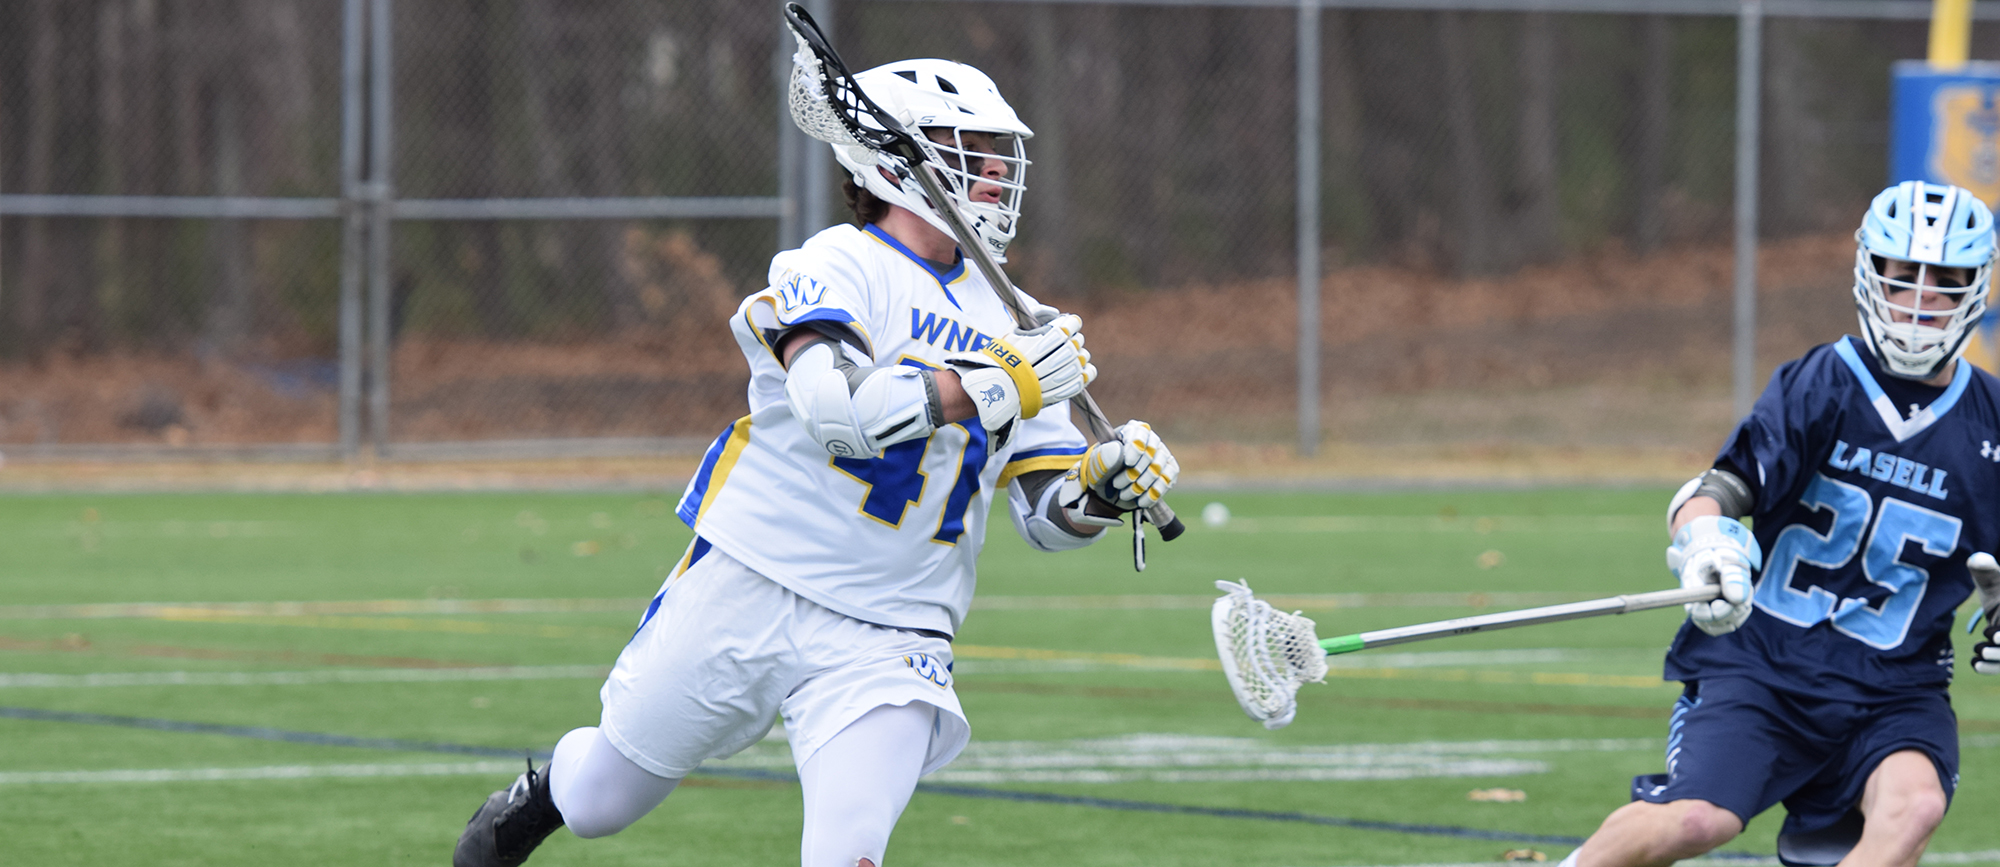 Sophomore Brendan Lyons scored a career-high five goals in Western New England's 16-6 win over Lasell on Saturday. (Photo by Courtney Carlson)